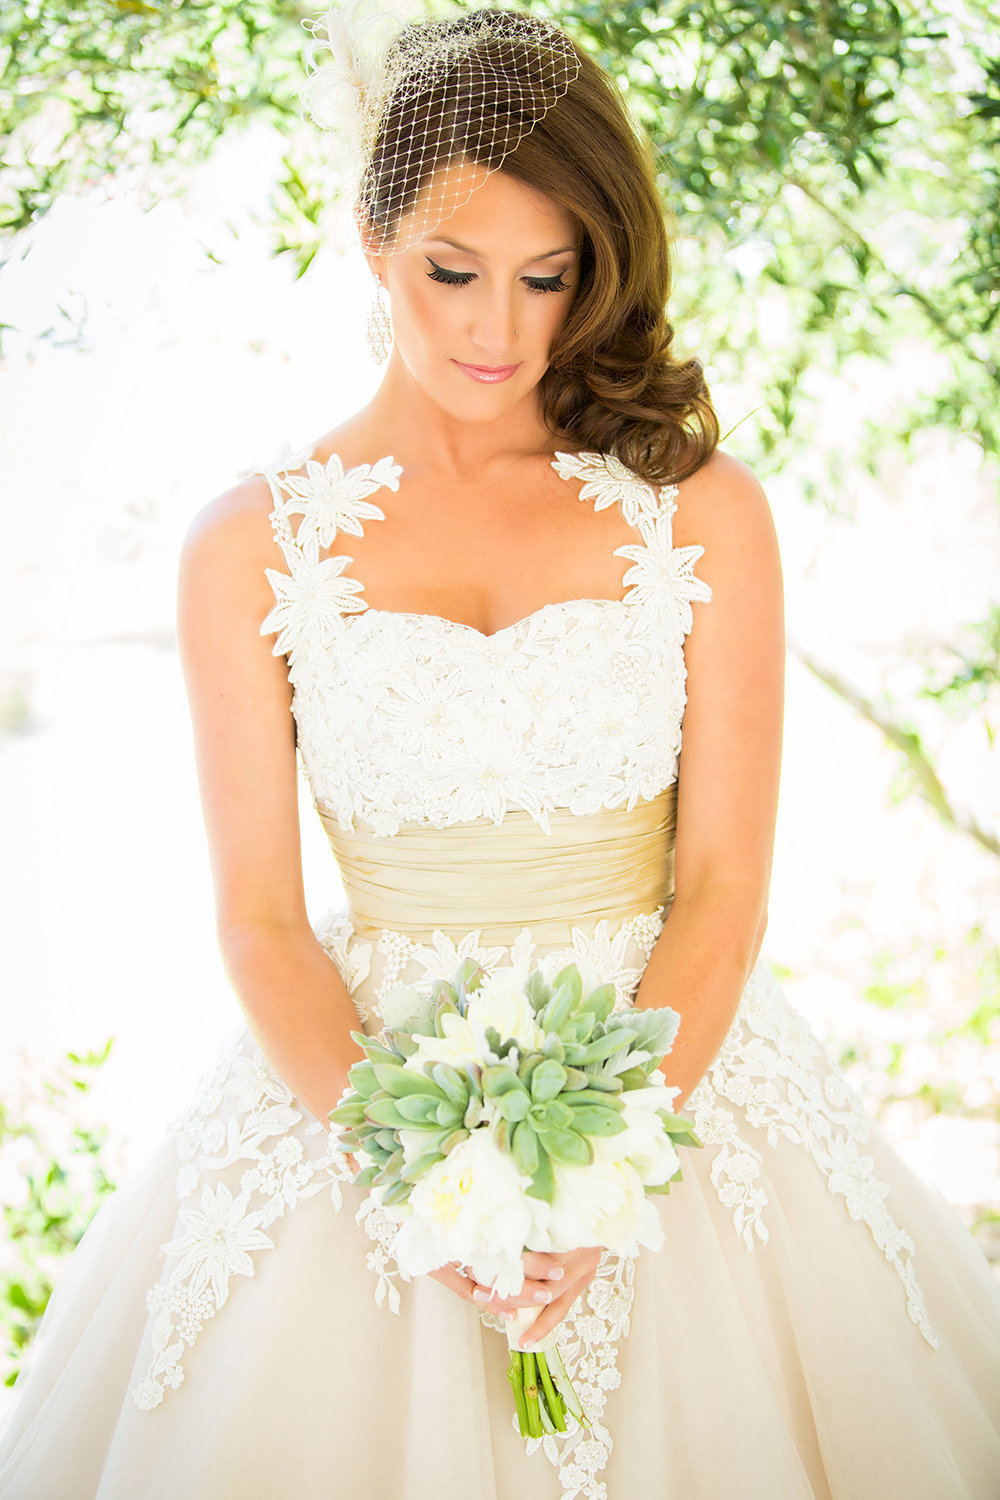 Grand Tradition wedding photos bride with beautiful bouquet